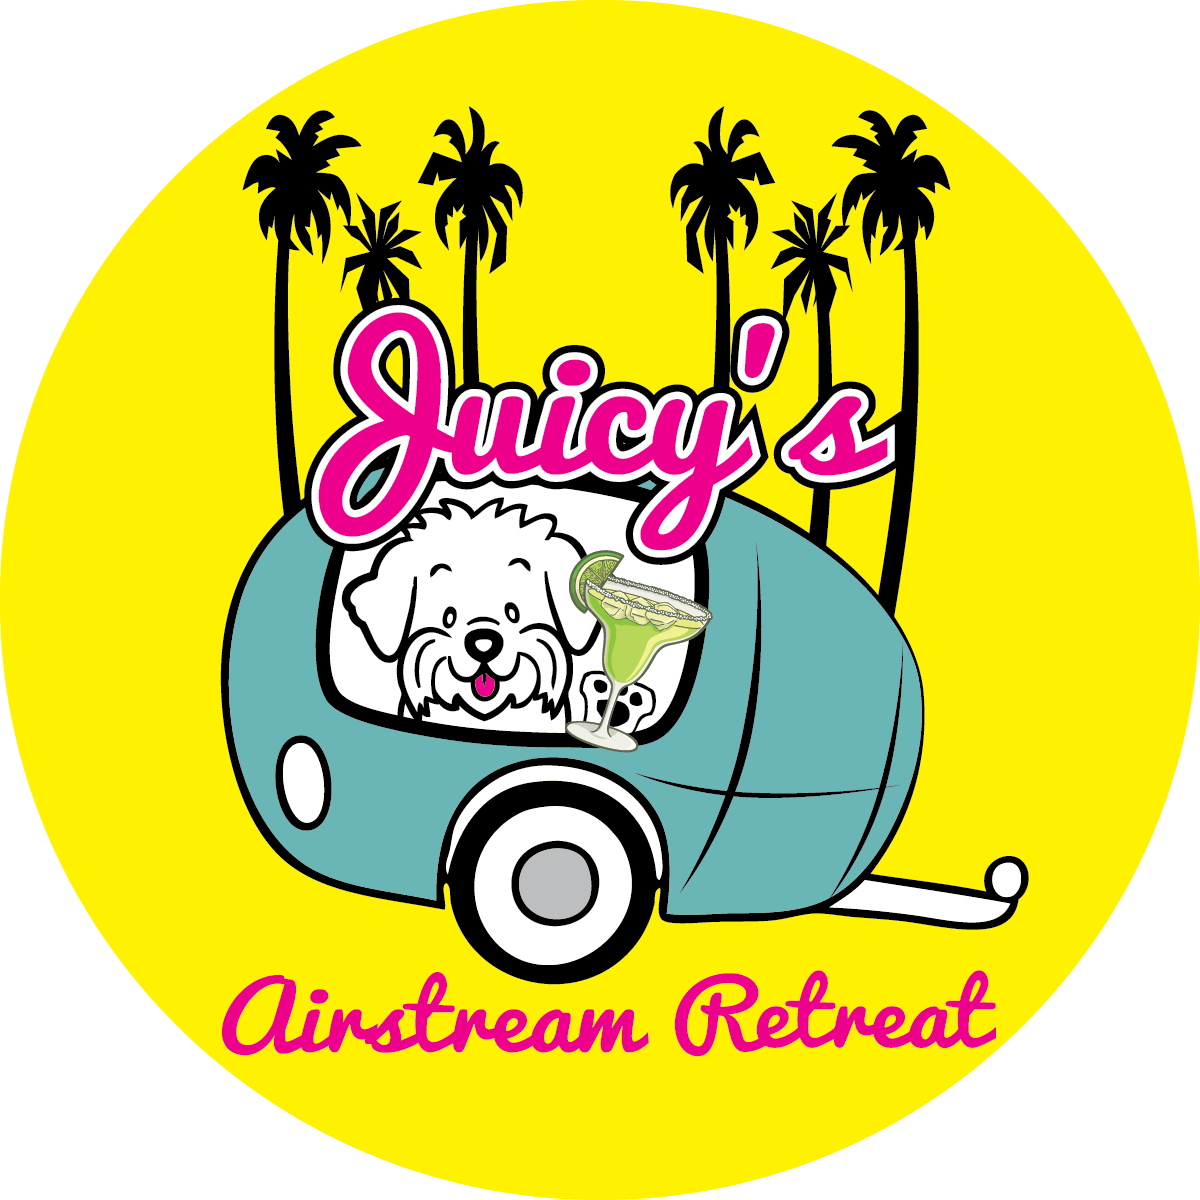 Juicy's Airstream Retreat